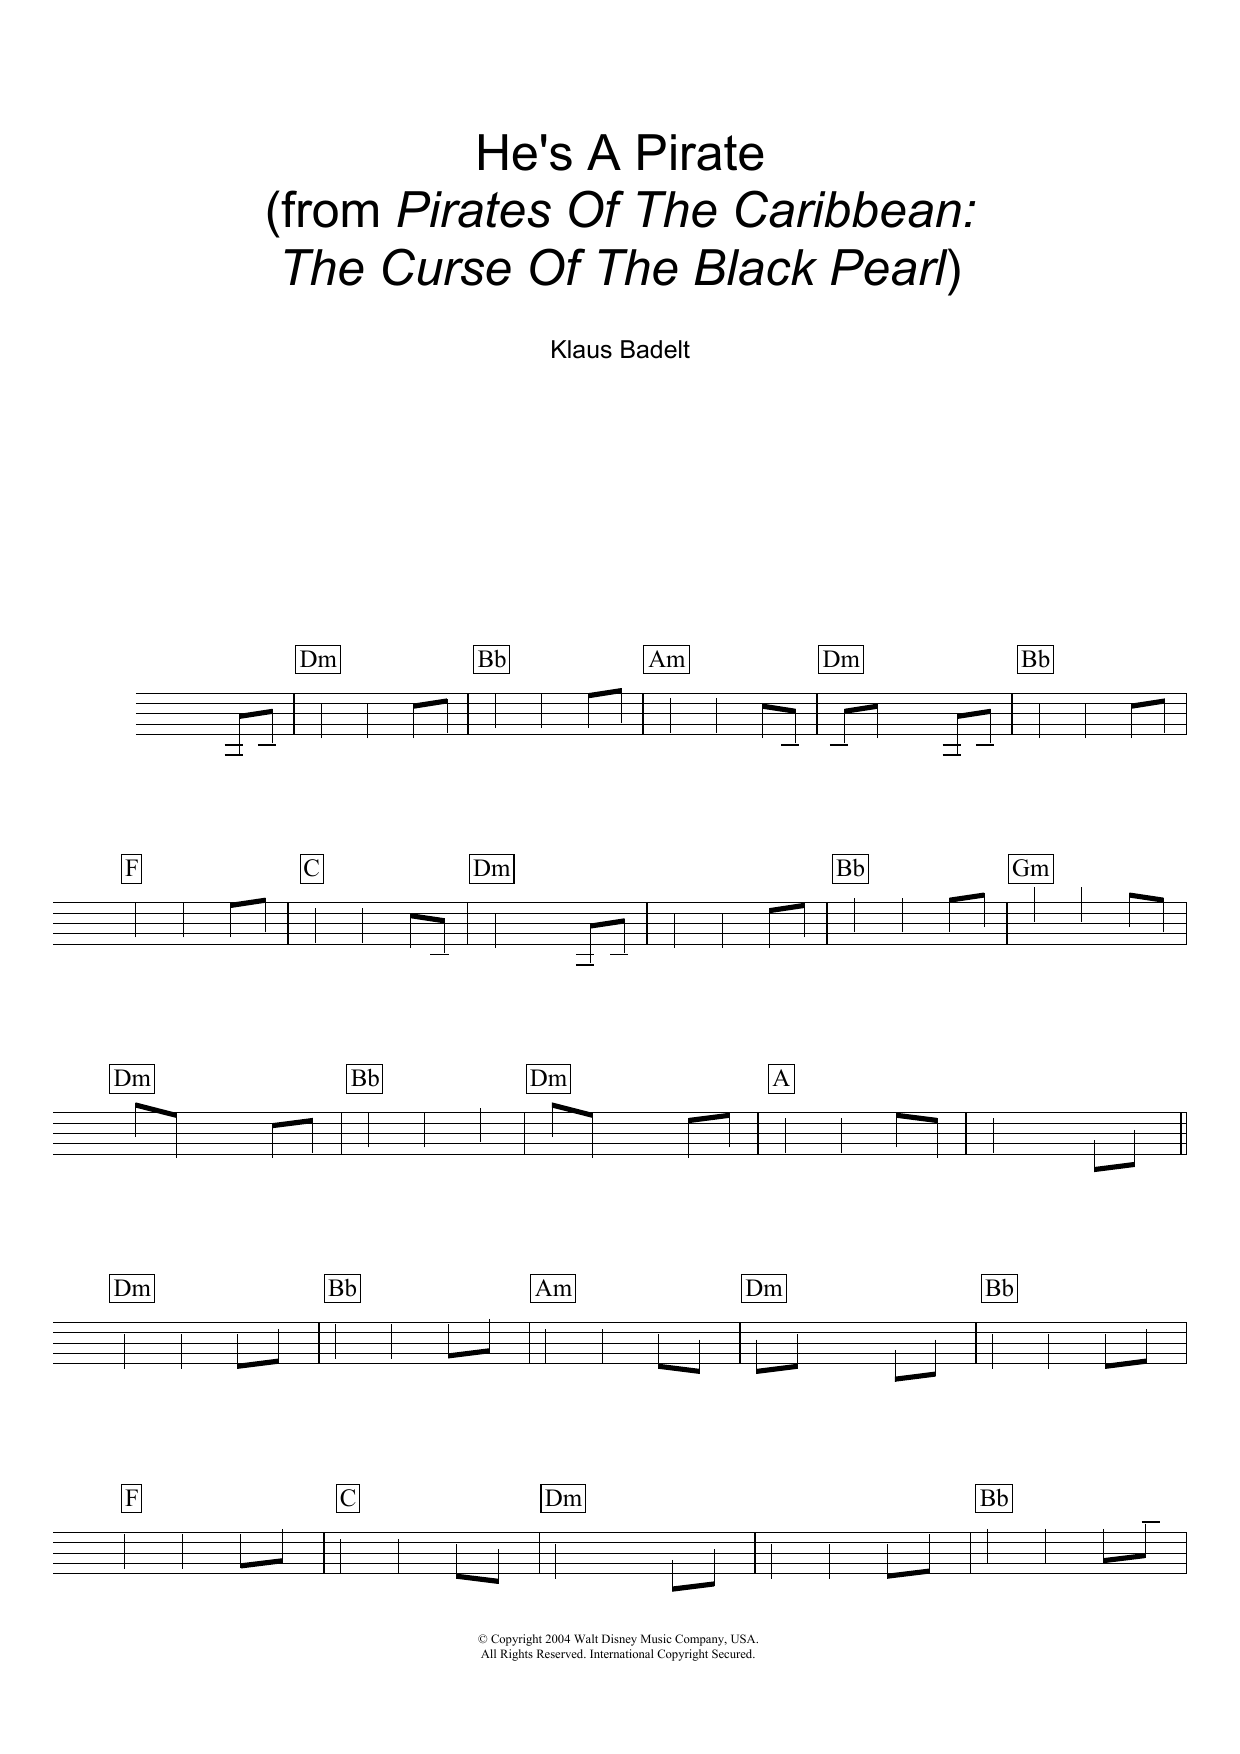 Klaus Badelt - He's A Pirate (from Pirates Of The Caribbean: The Curse Of The Black Pearl)